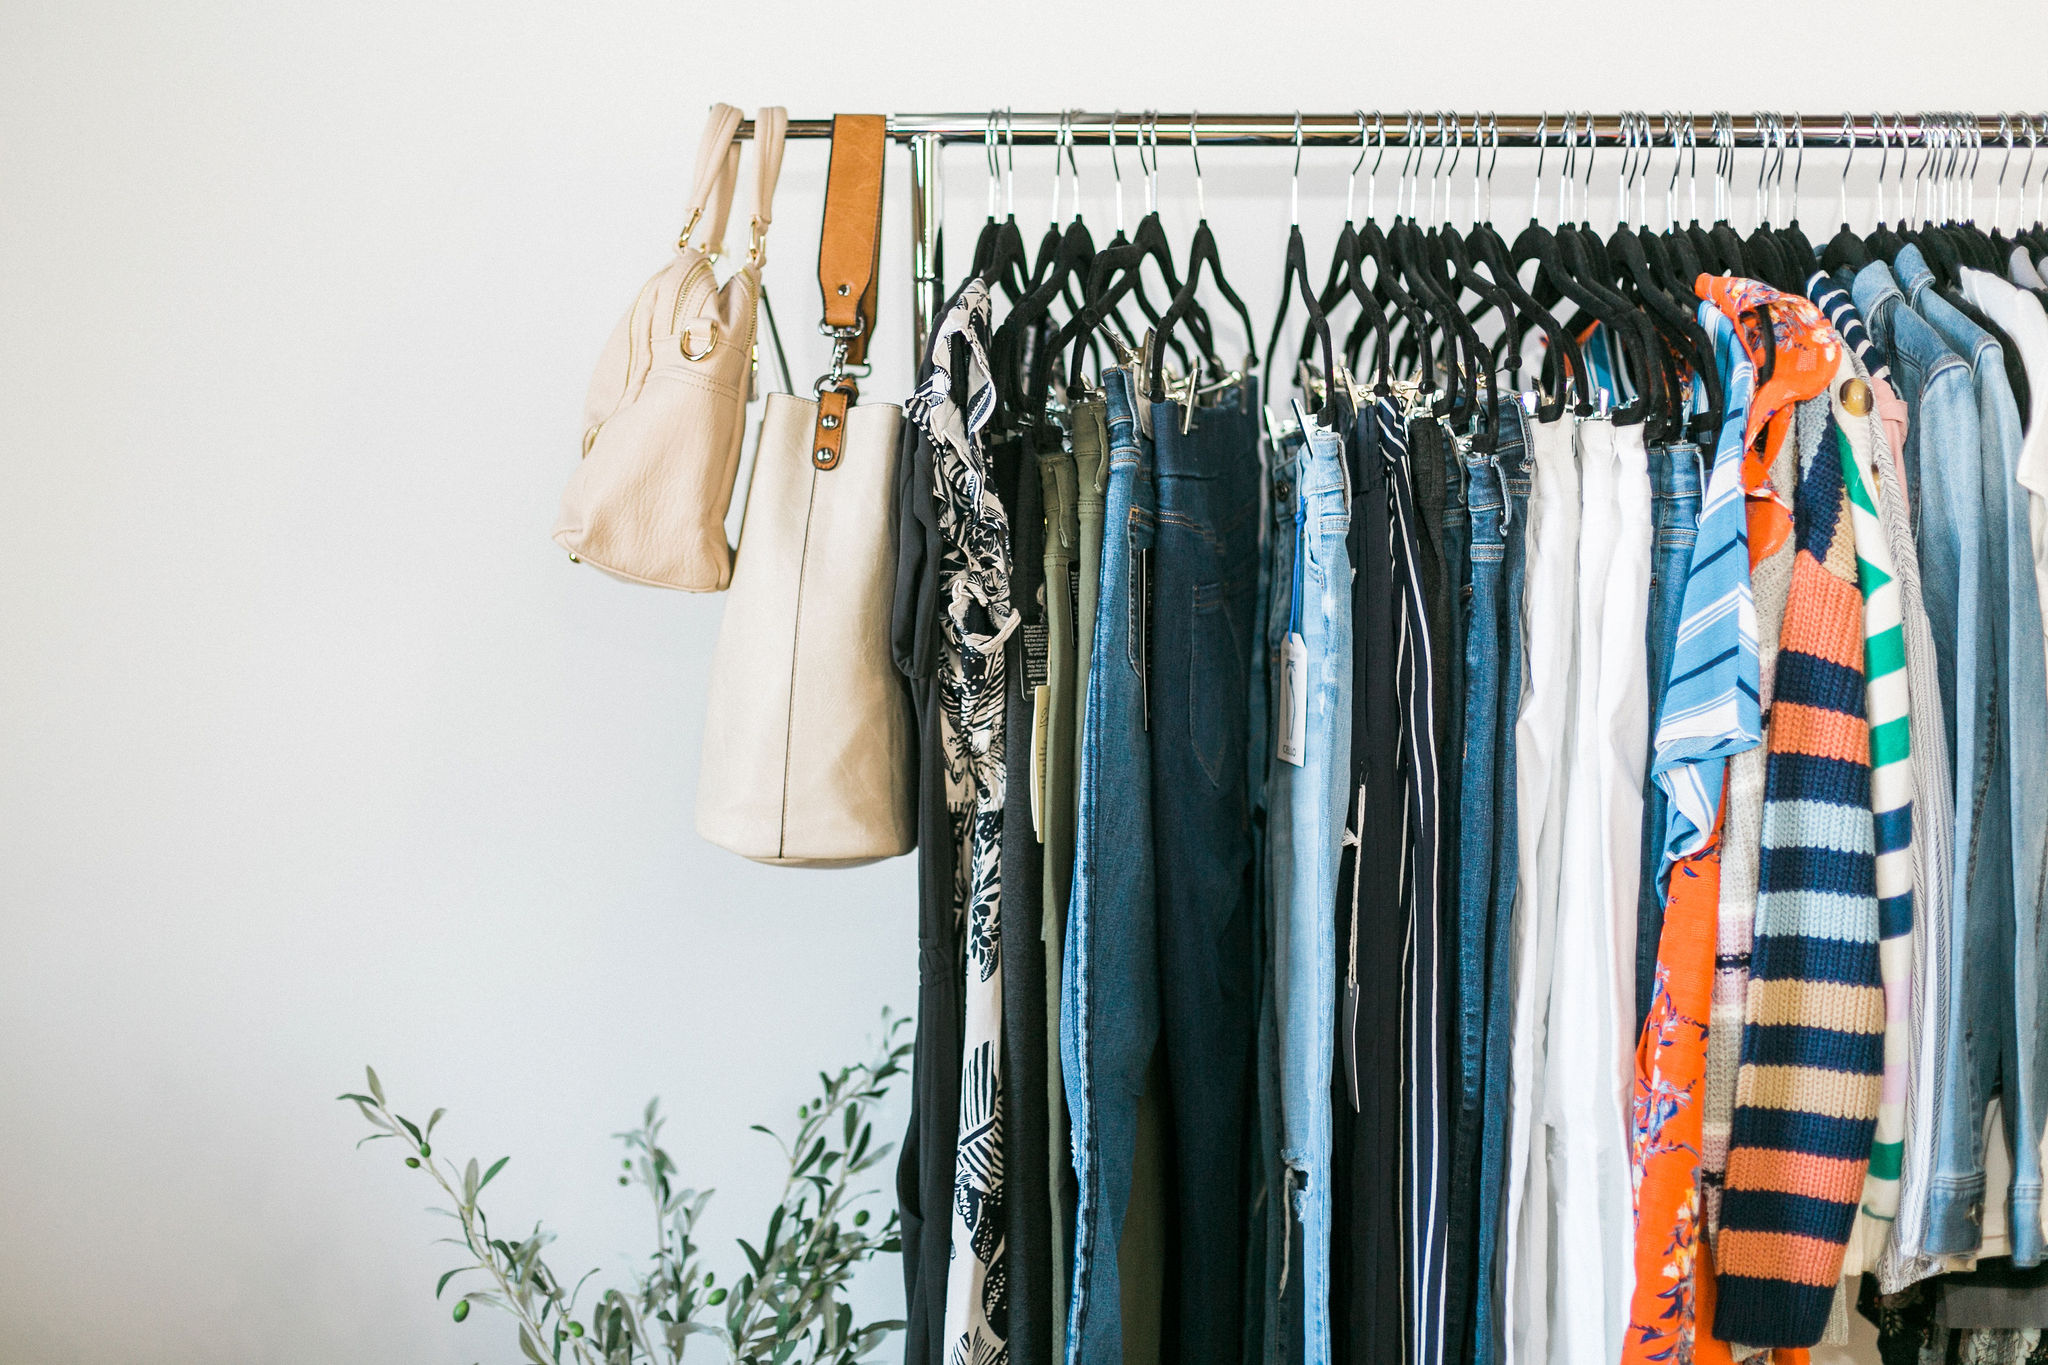 Schedule a one on one styling session - We'll help you match what you own with what you NEED to own